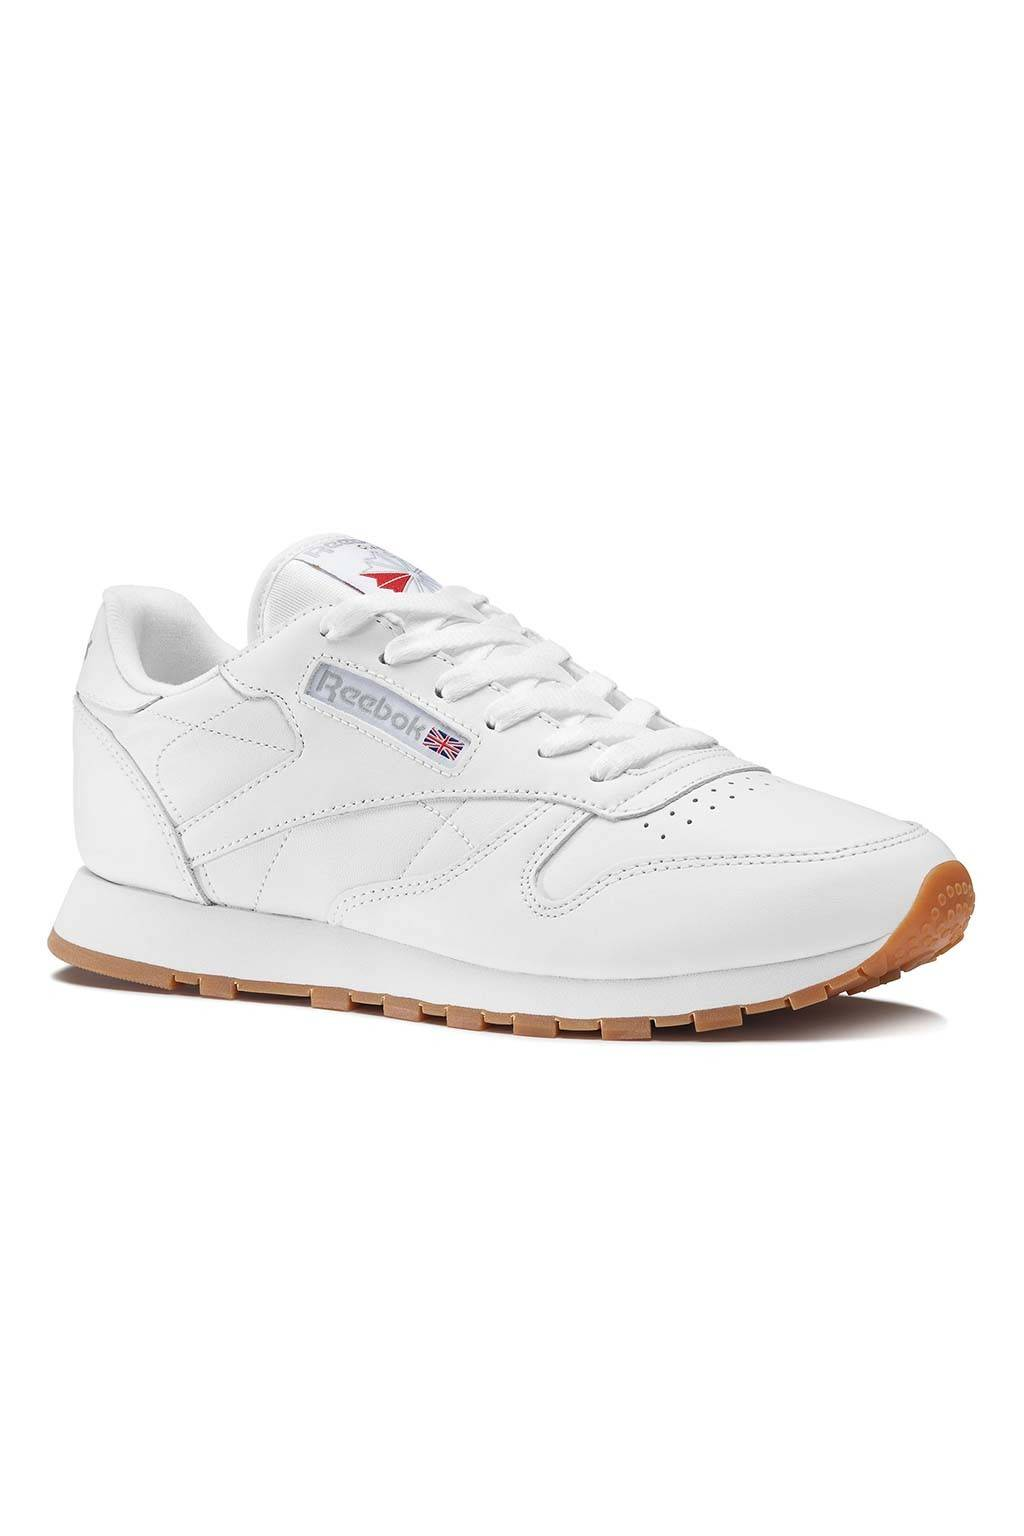 Reebok Classic Leather 49803 CL